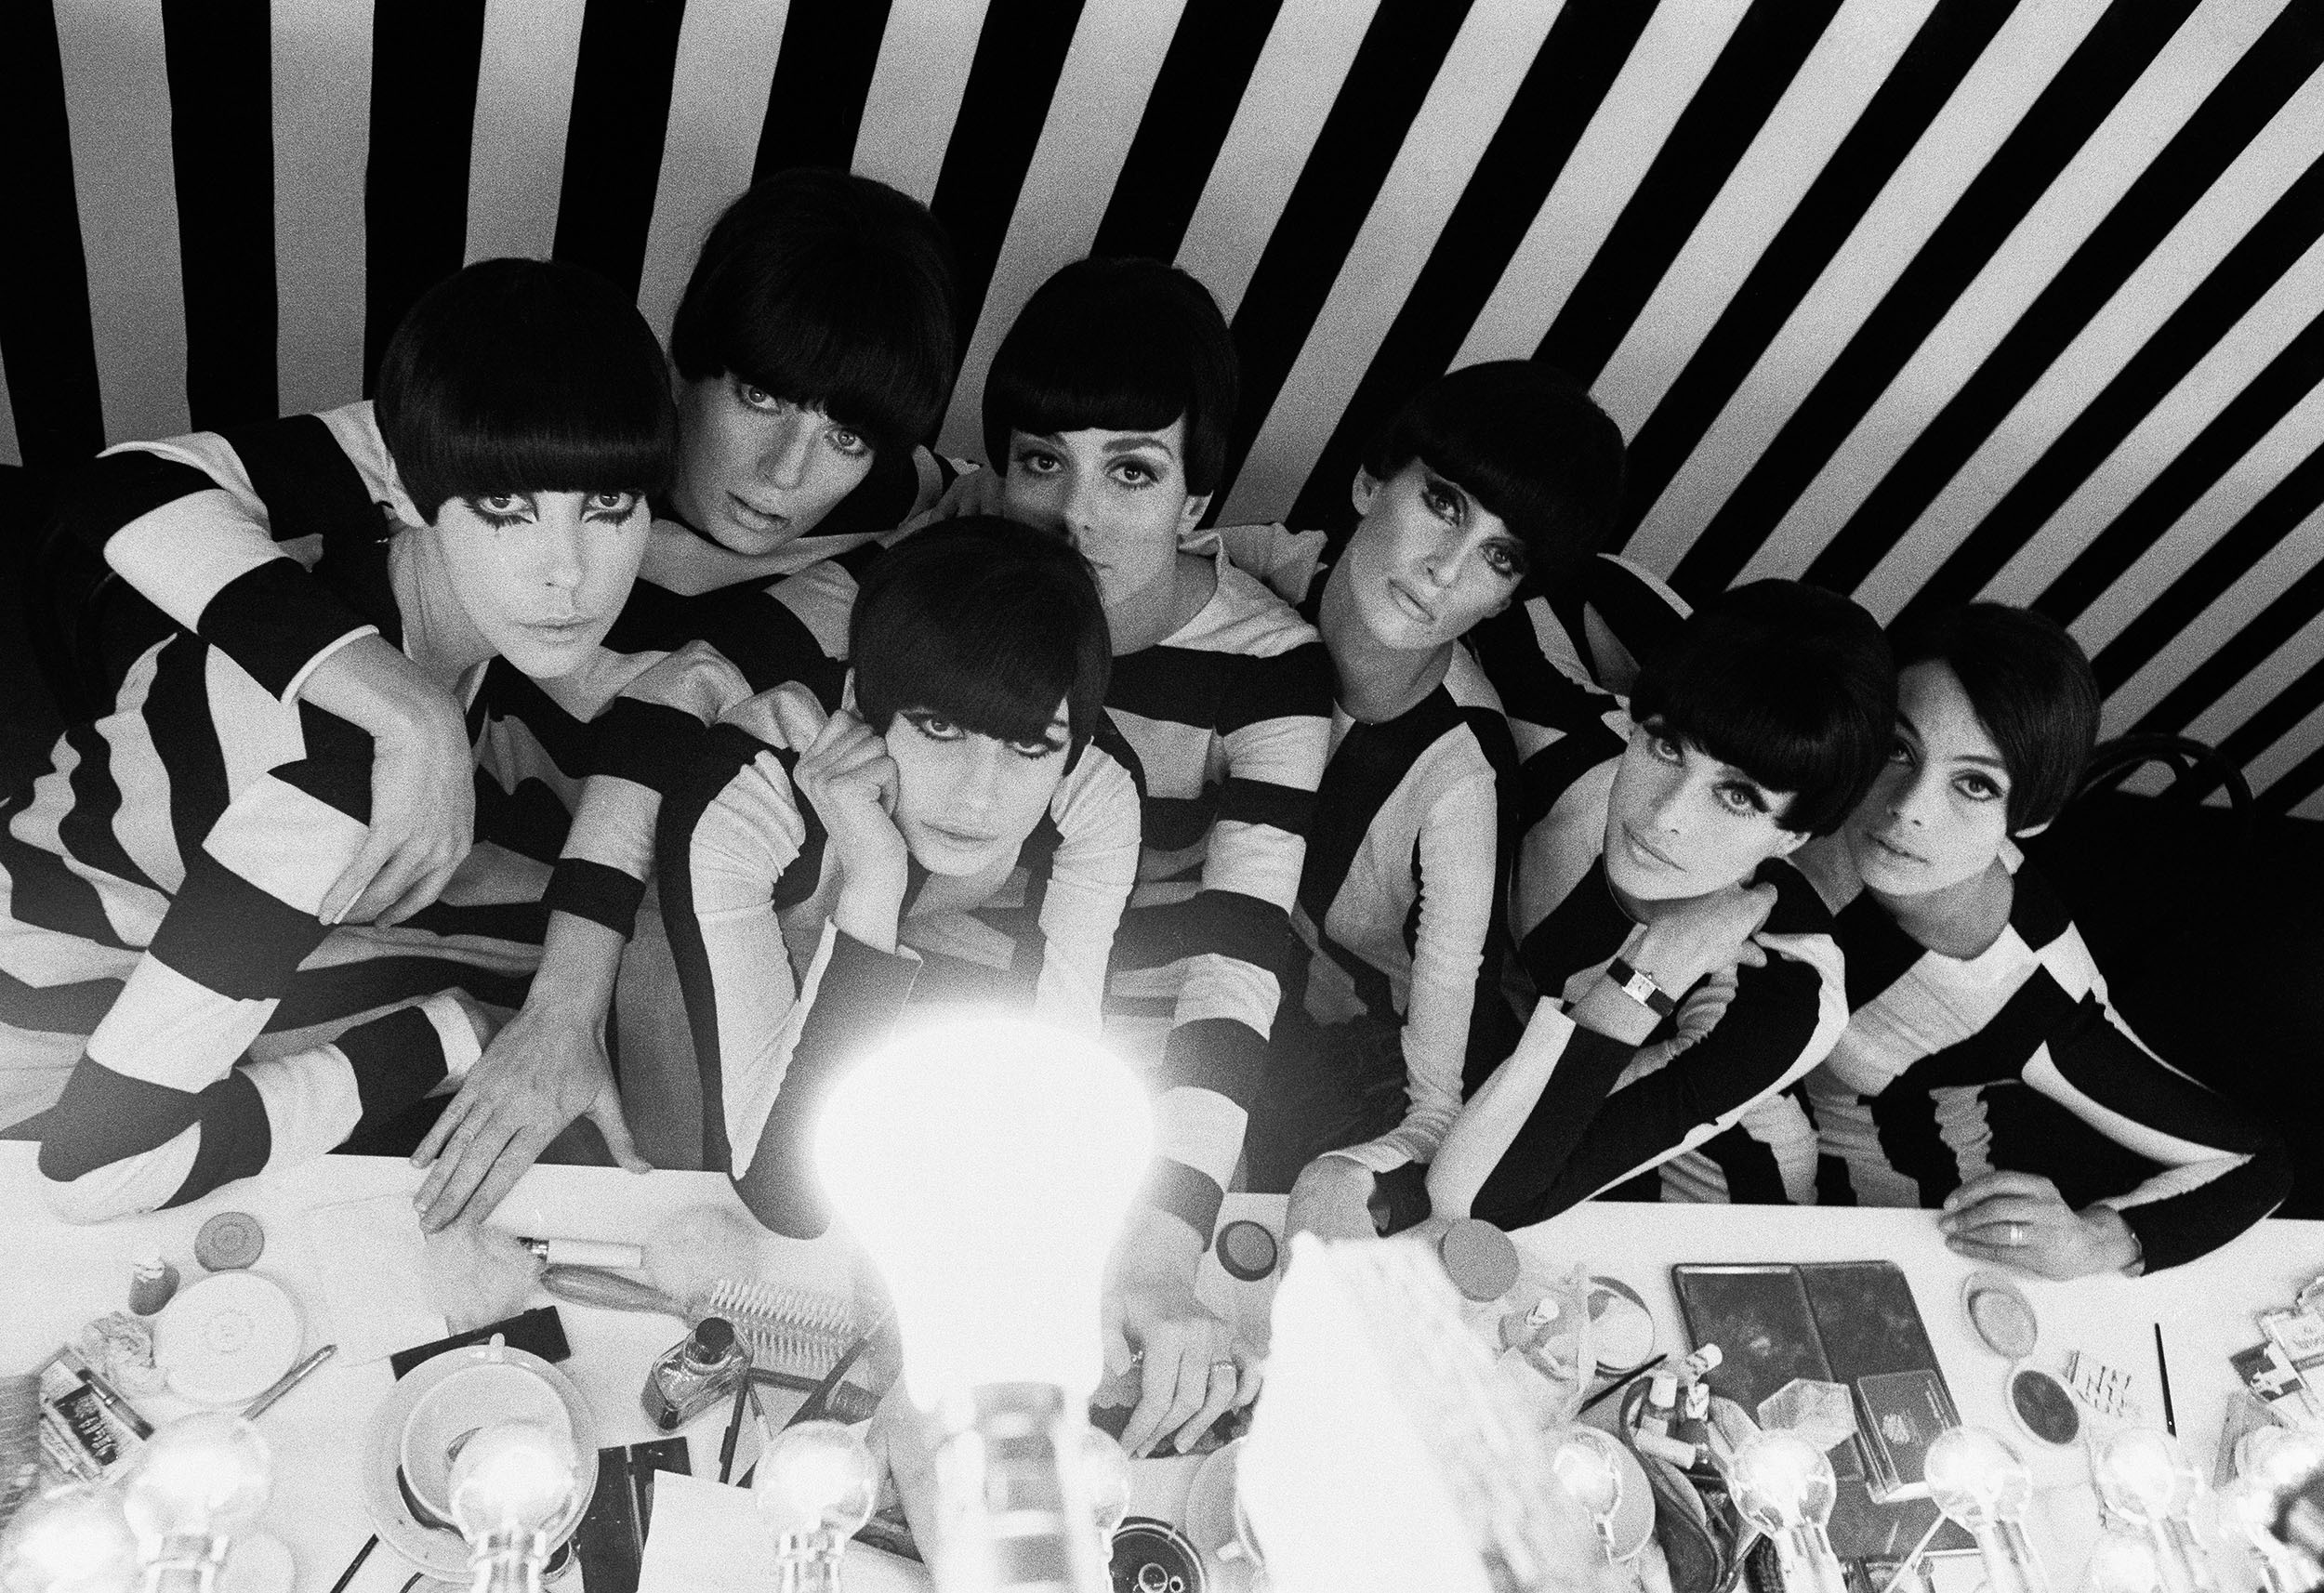 William Klein. Backstage, Qui êtes-vous Polly Maggoo, 1966